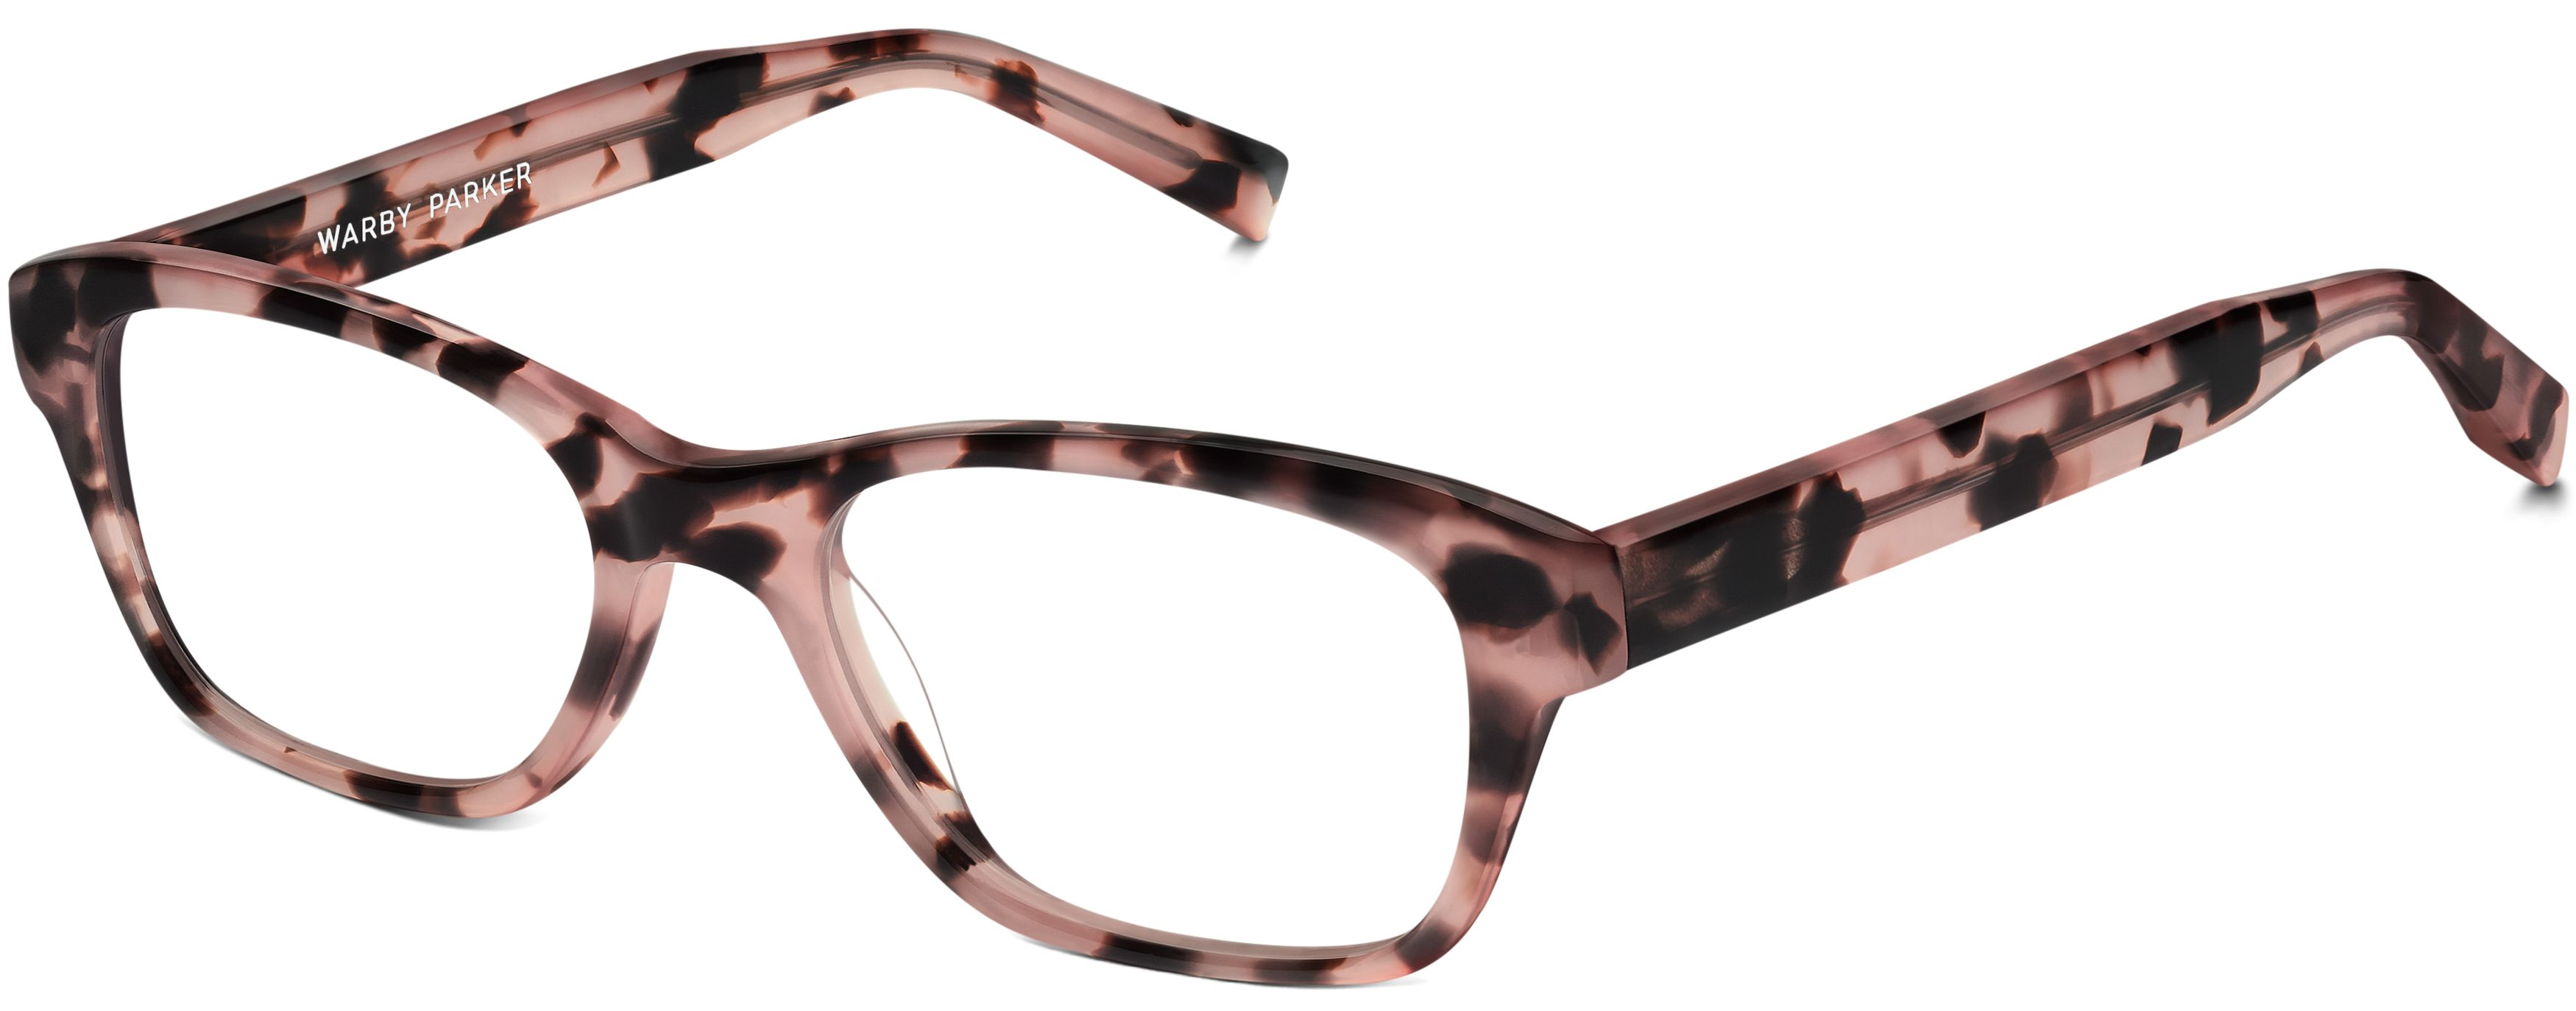 Sims Eyeglasses in Petal Tortoise for Women | Warby Parker